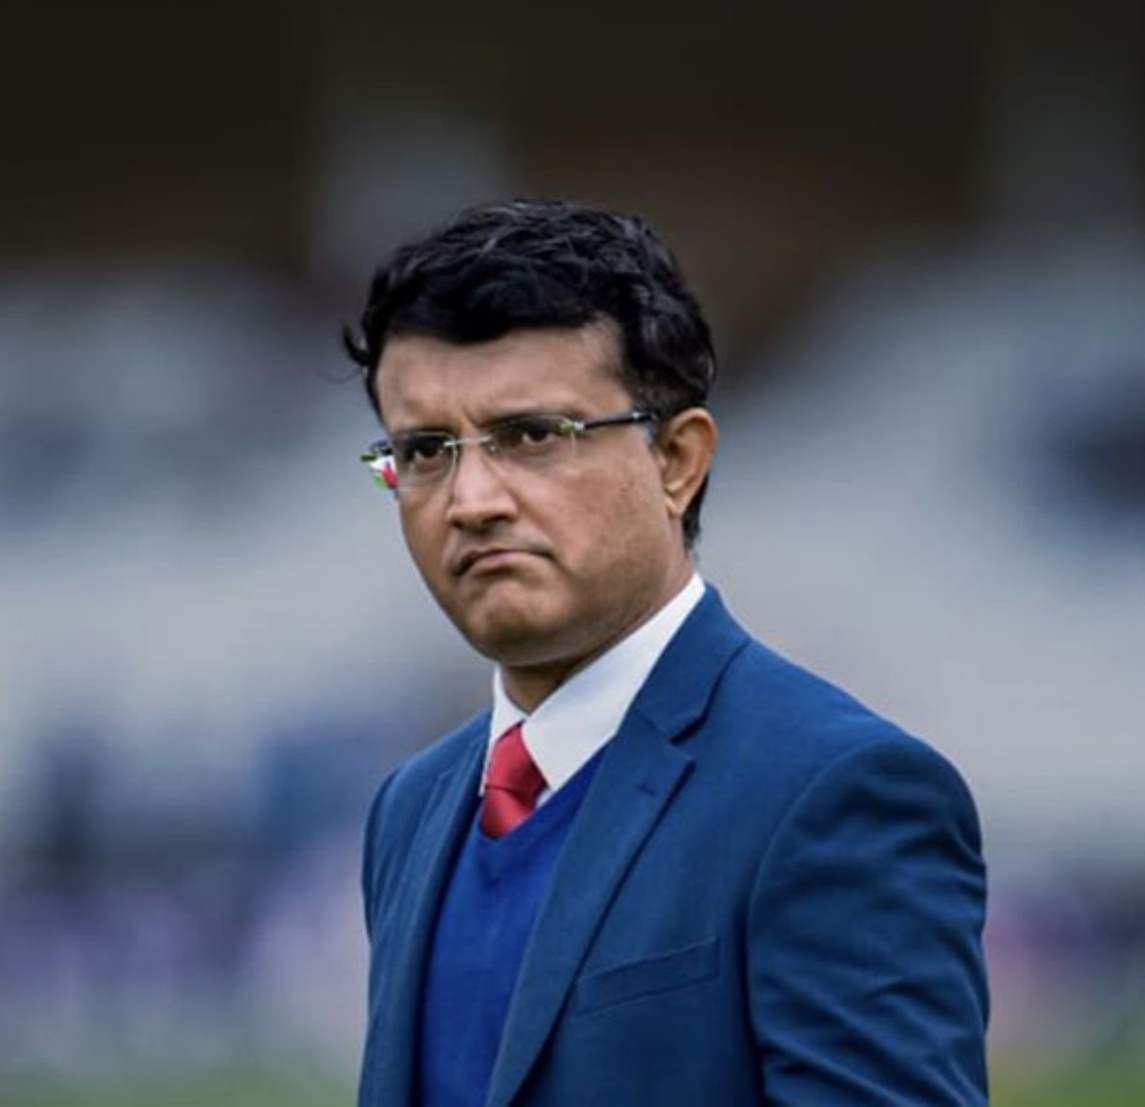 Photo courtesy: Instagram/Sourav Ganguly